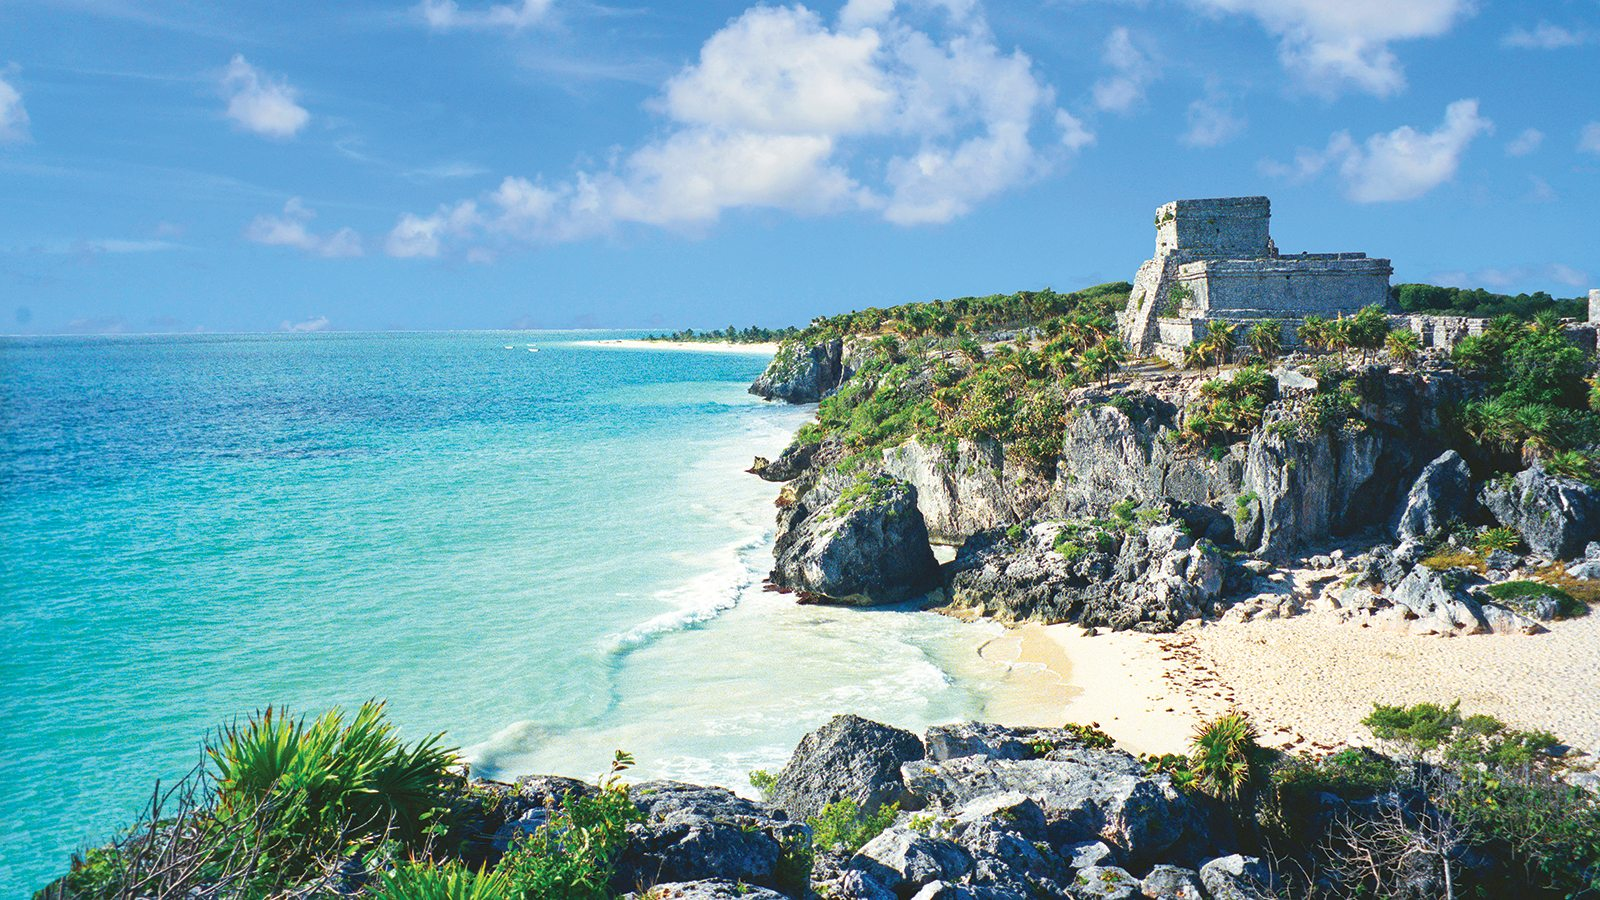 Tulum The World S Only Coastal Mayan Ruins Photo Sam Camp Istock